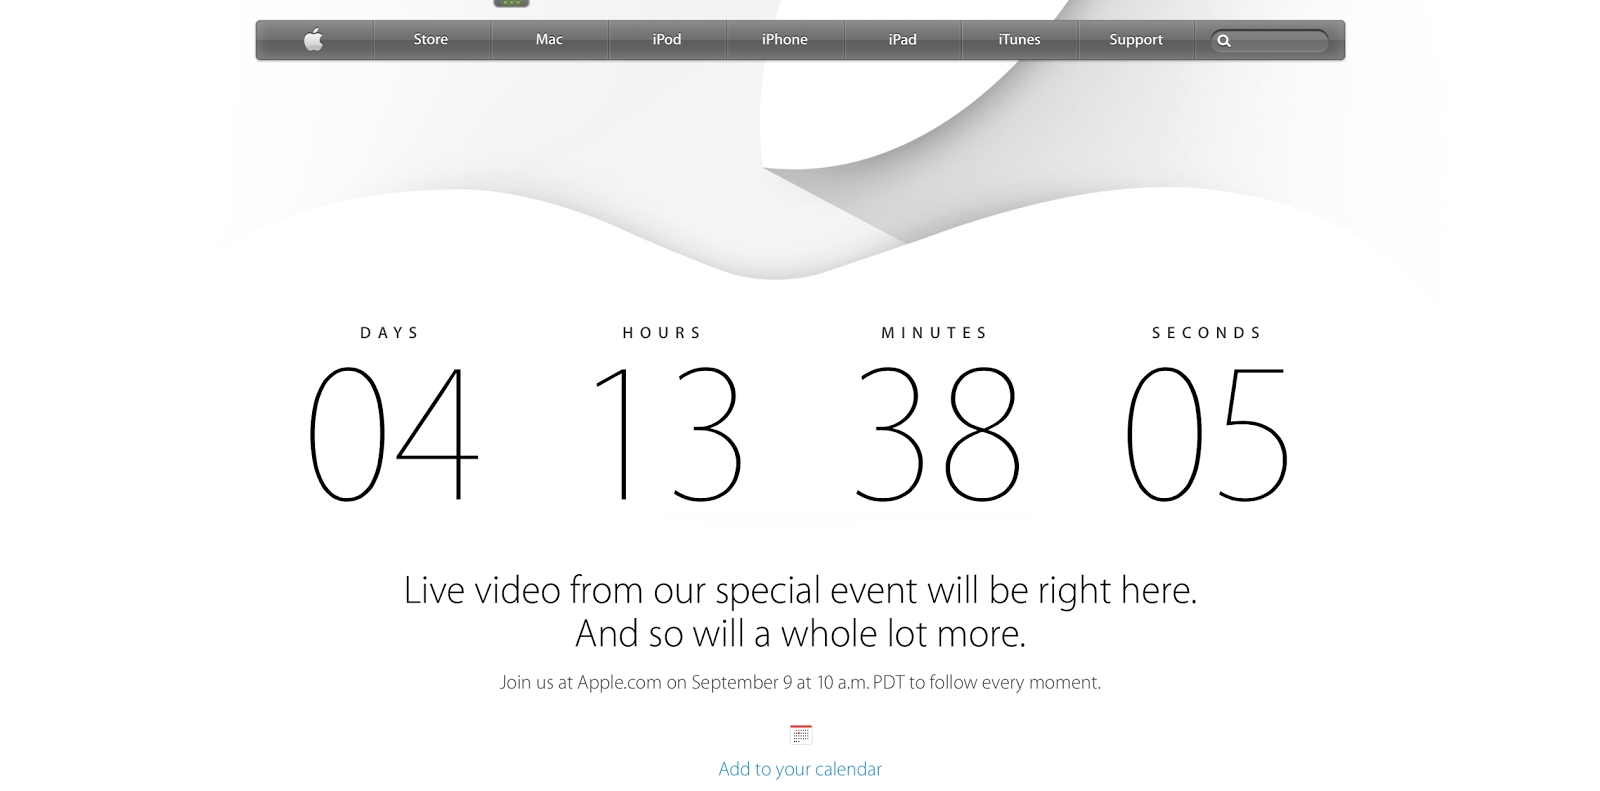 Tech Talk 4 Geeks: Apple Makes Page With Countdown For Iphone 6 Event Countdown Calendar On Iphone 6